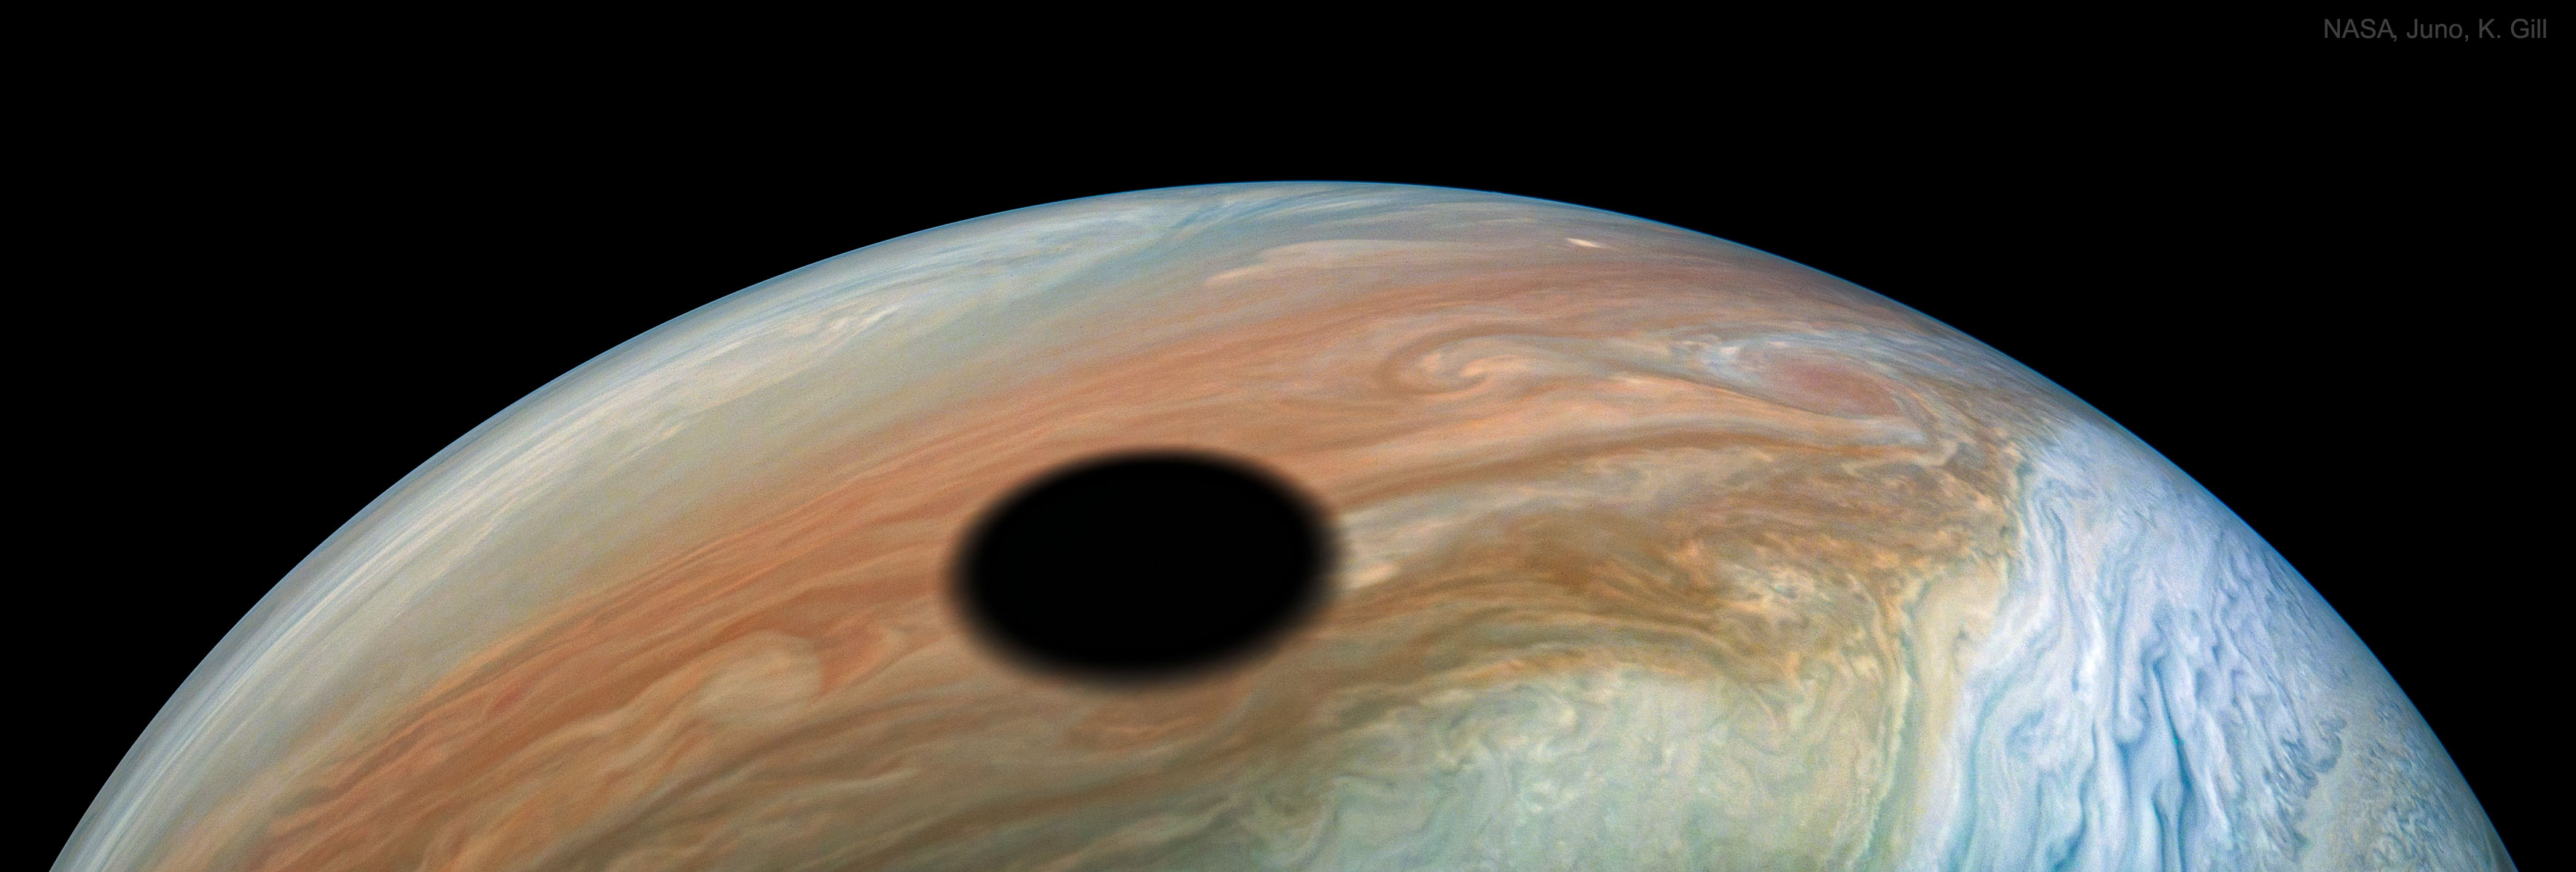 APOD: 2019 October 7 - Io Eclipse Shadow on Jupiter from Juno